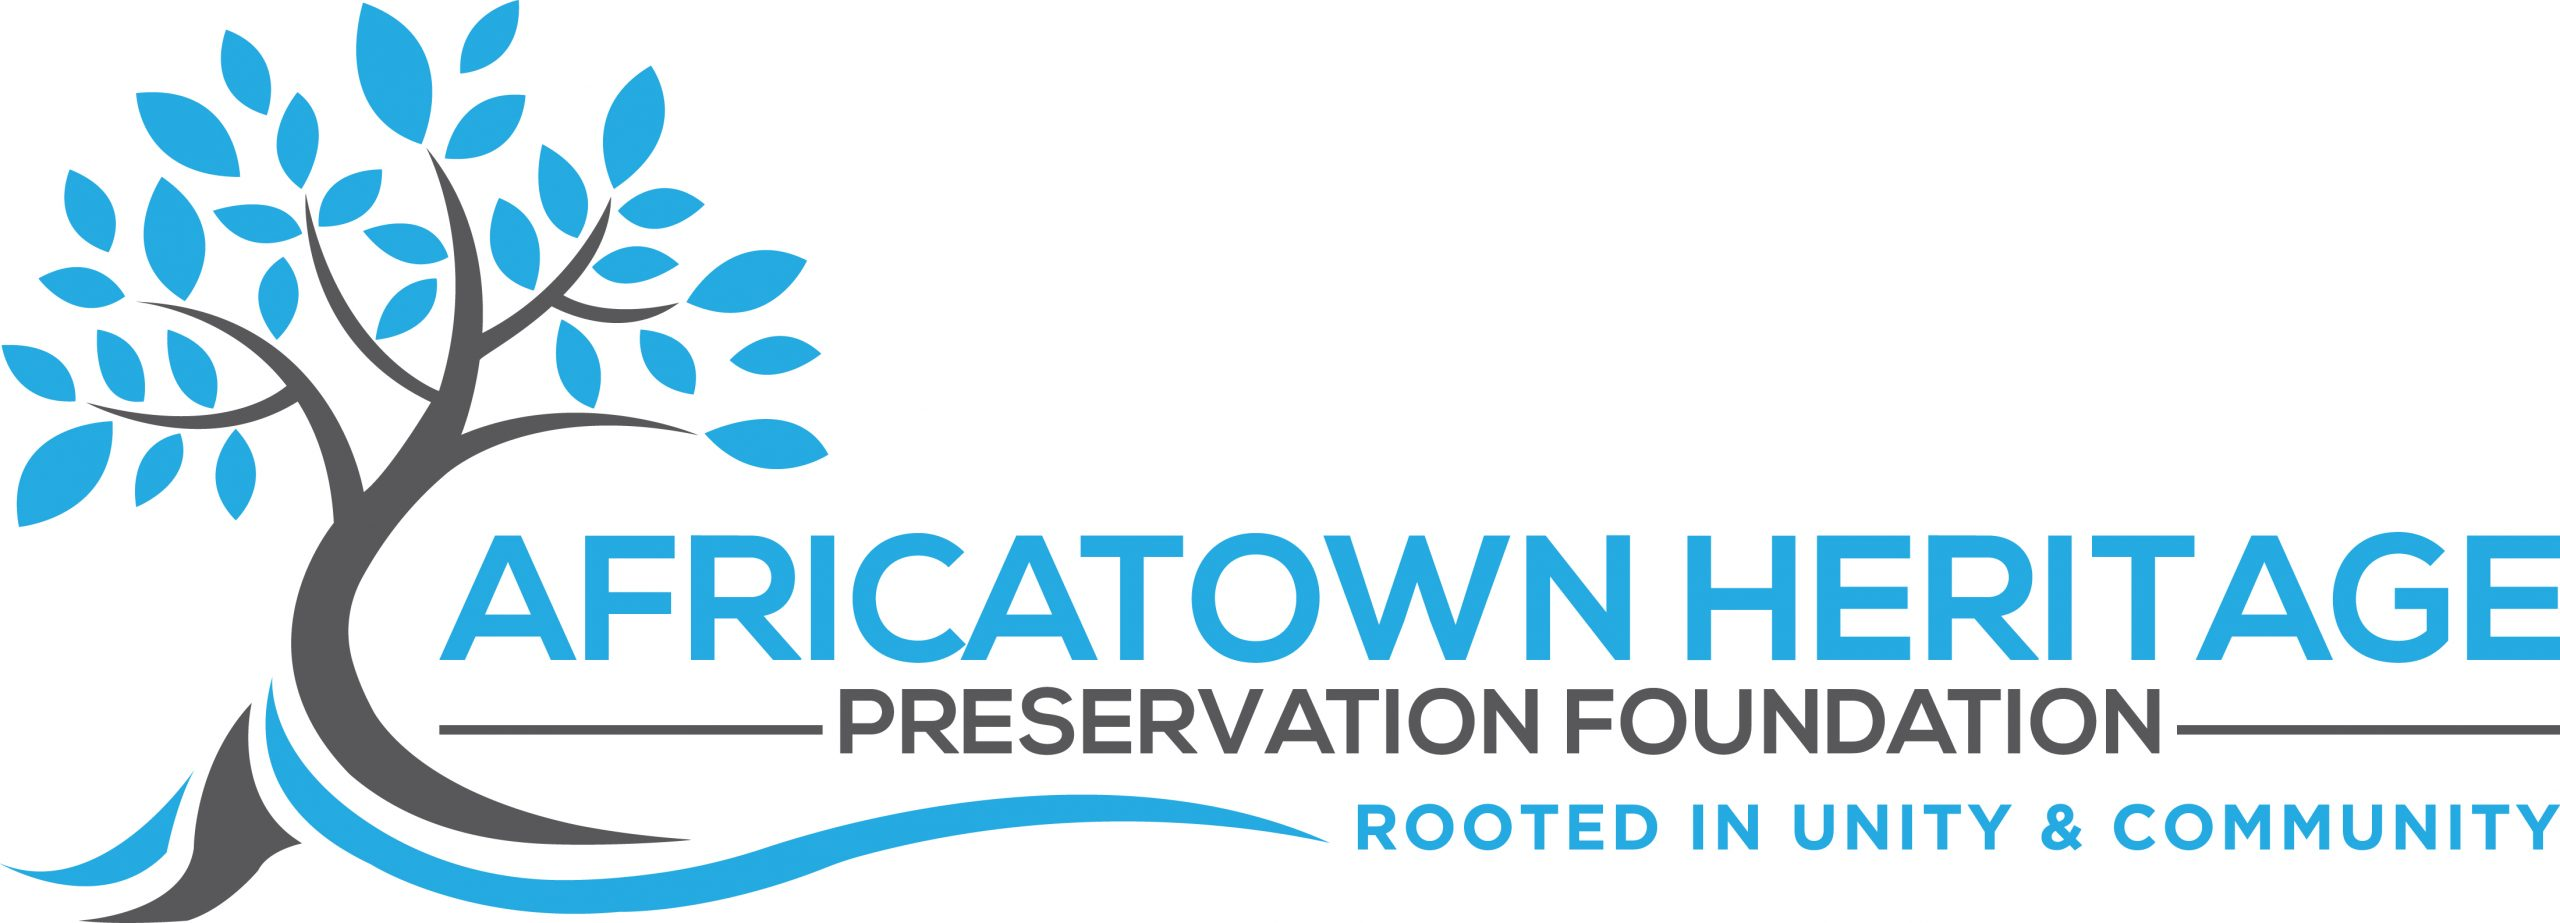 Africatown Heritage Preservation Foundation